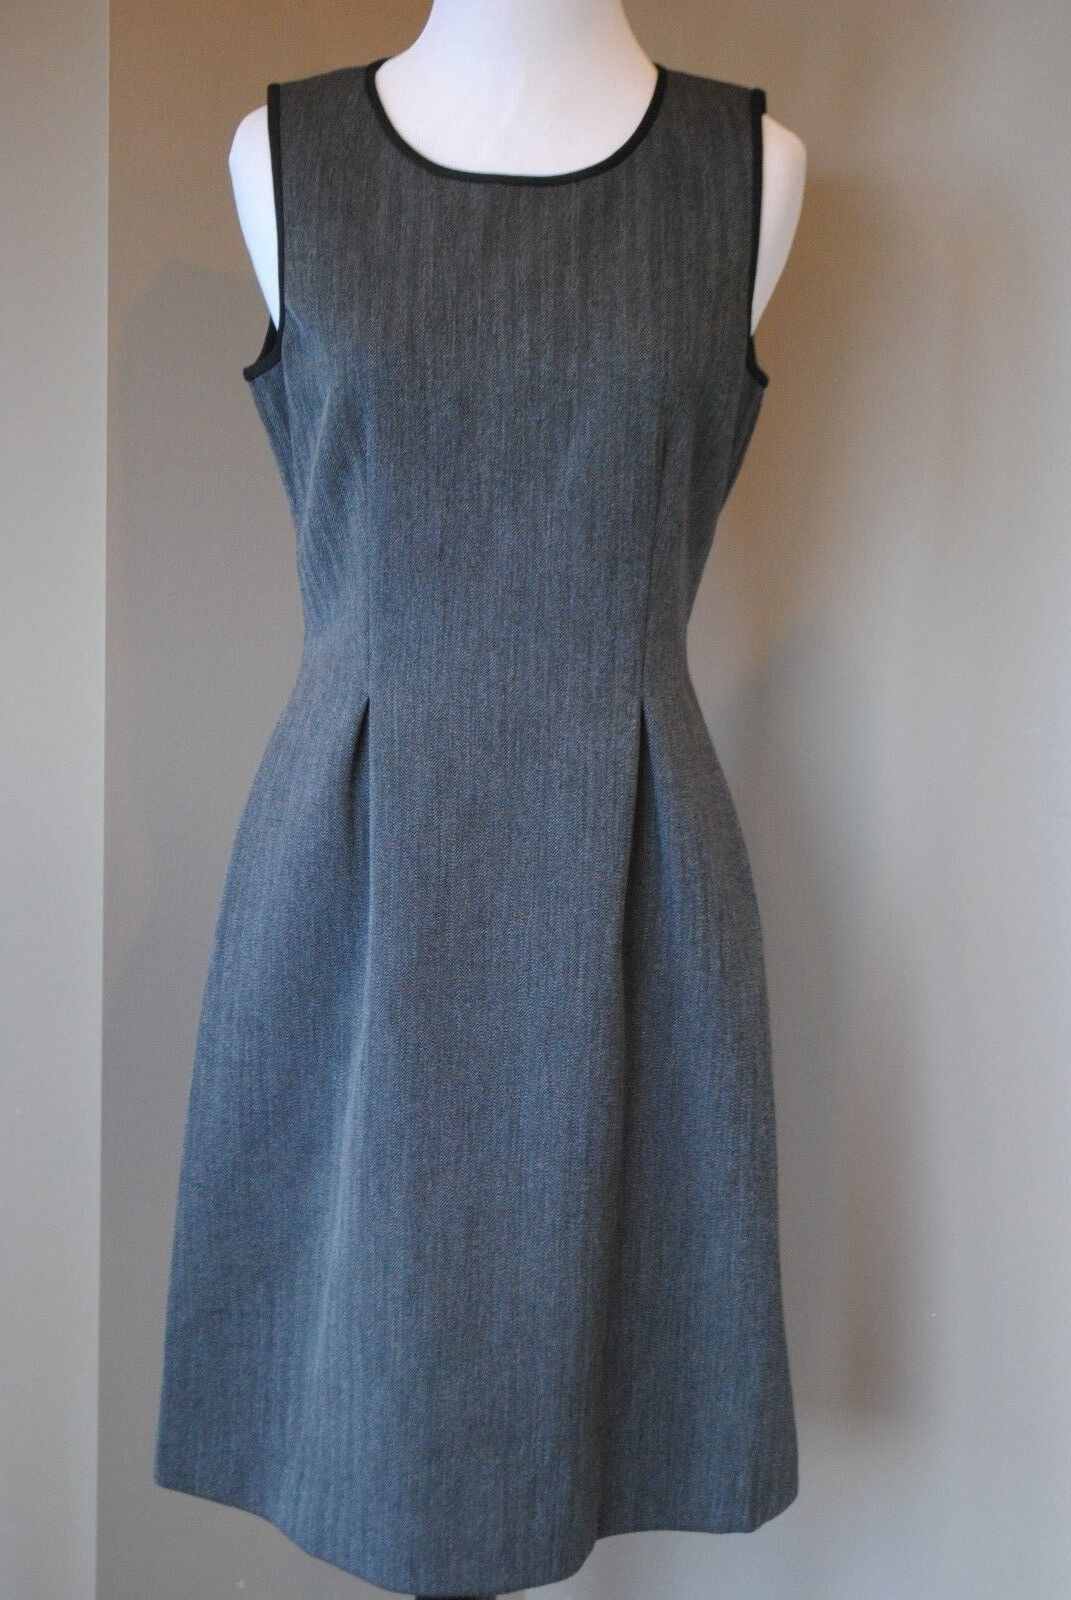 NWT NWT NWT J Crew Bonded Herringbone Dress in Charcoal Sz 6 Small B4764  168 dd25b3